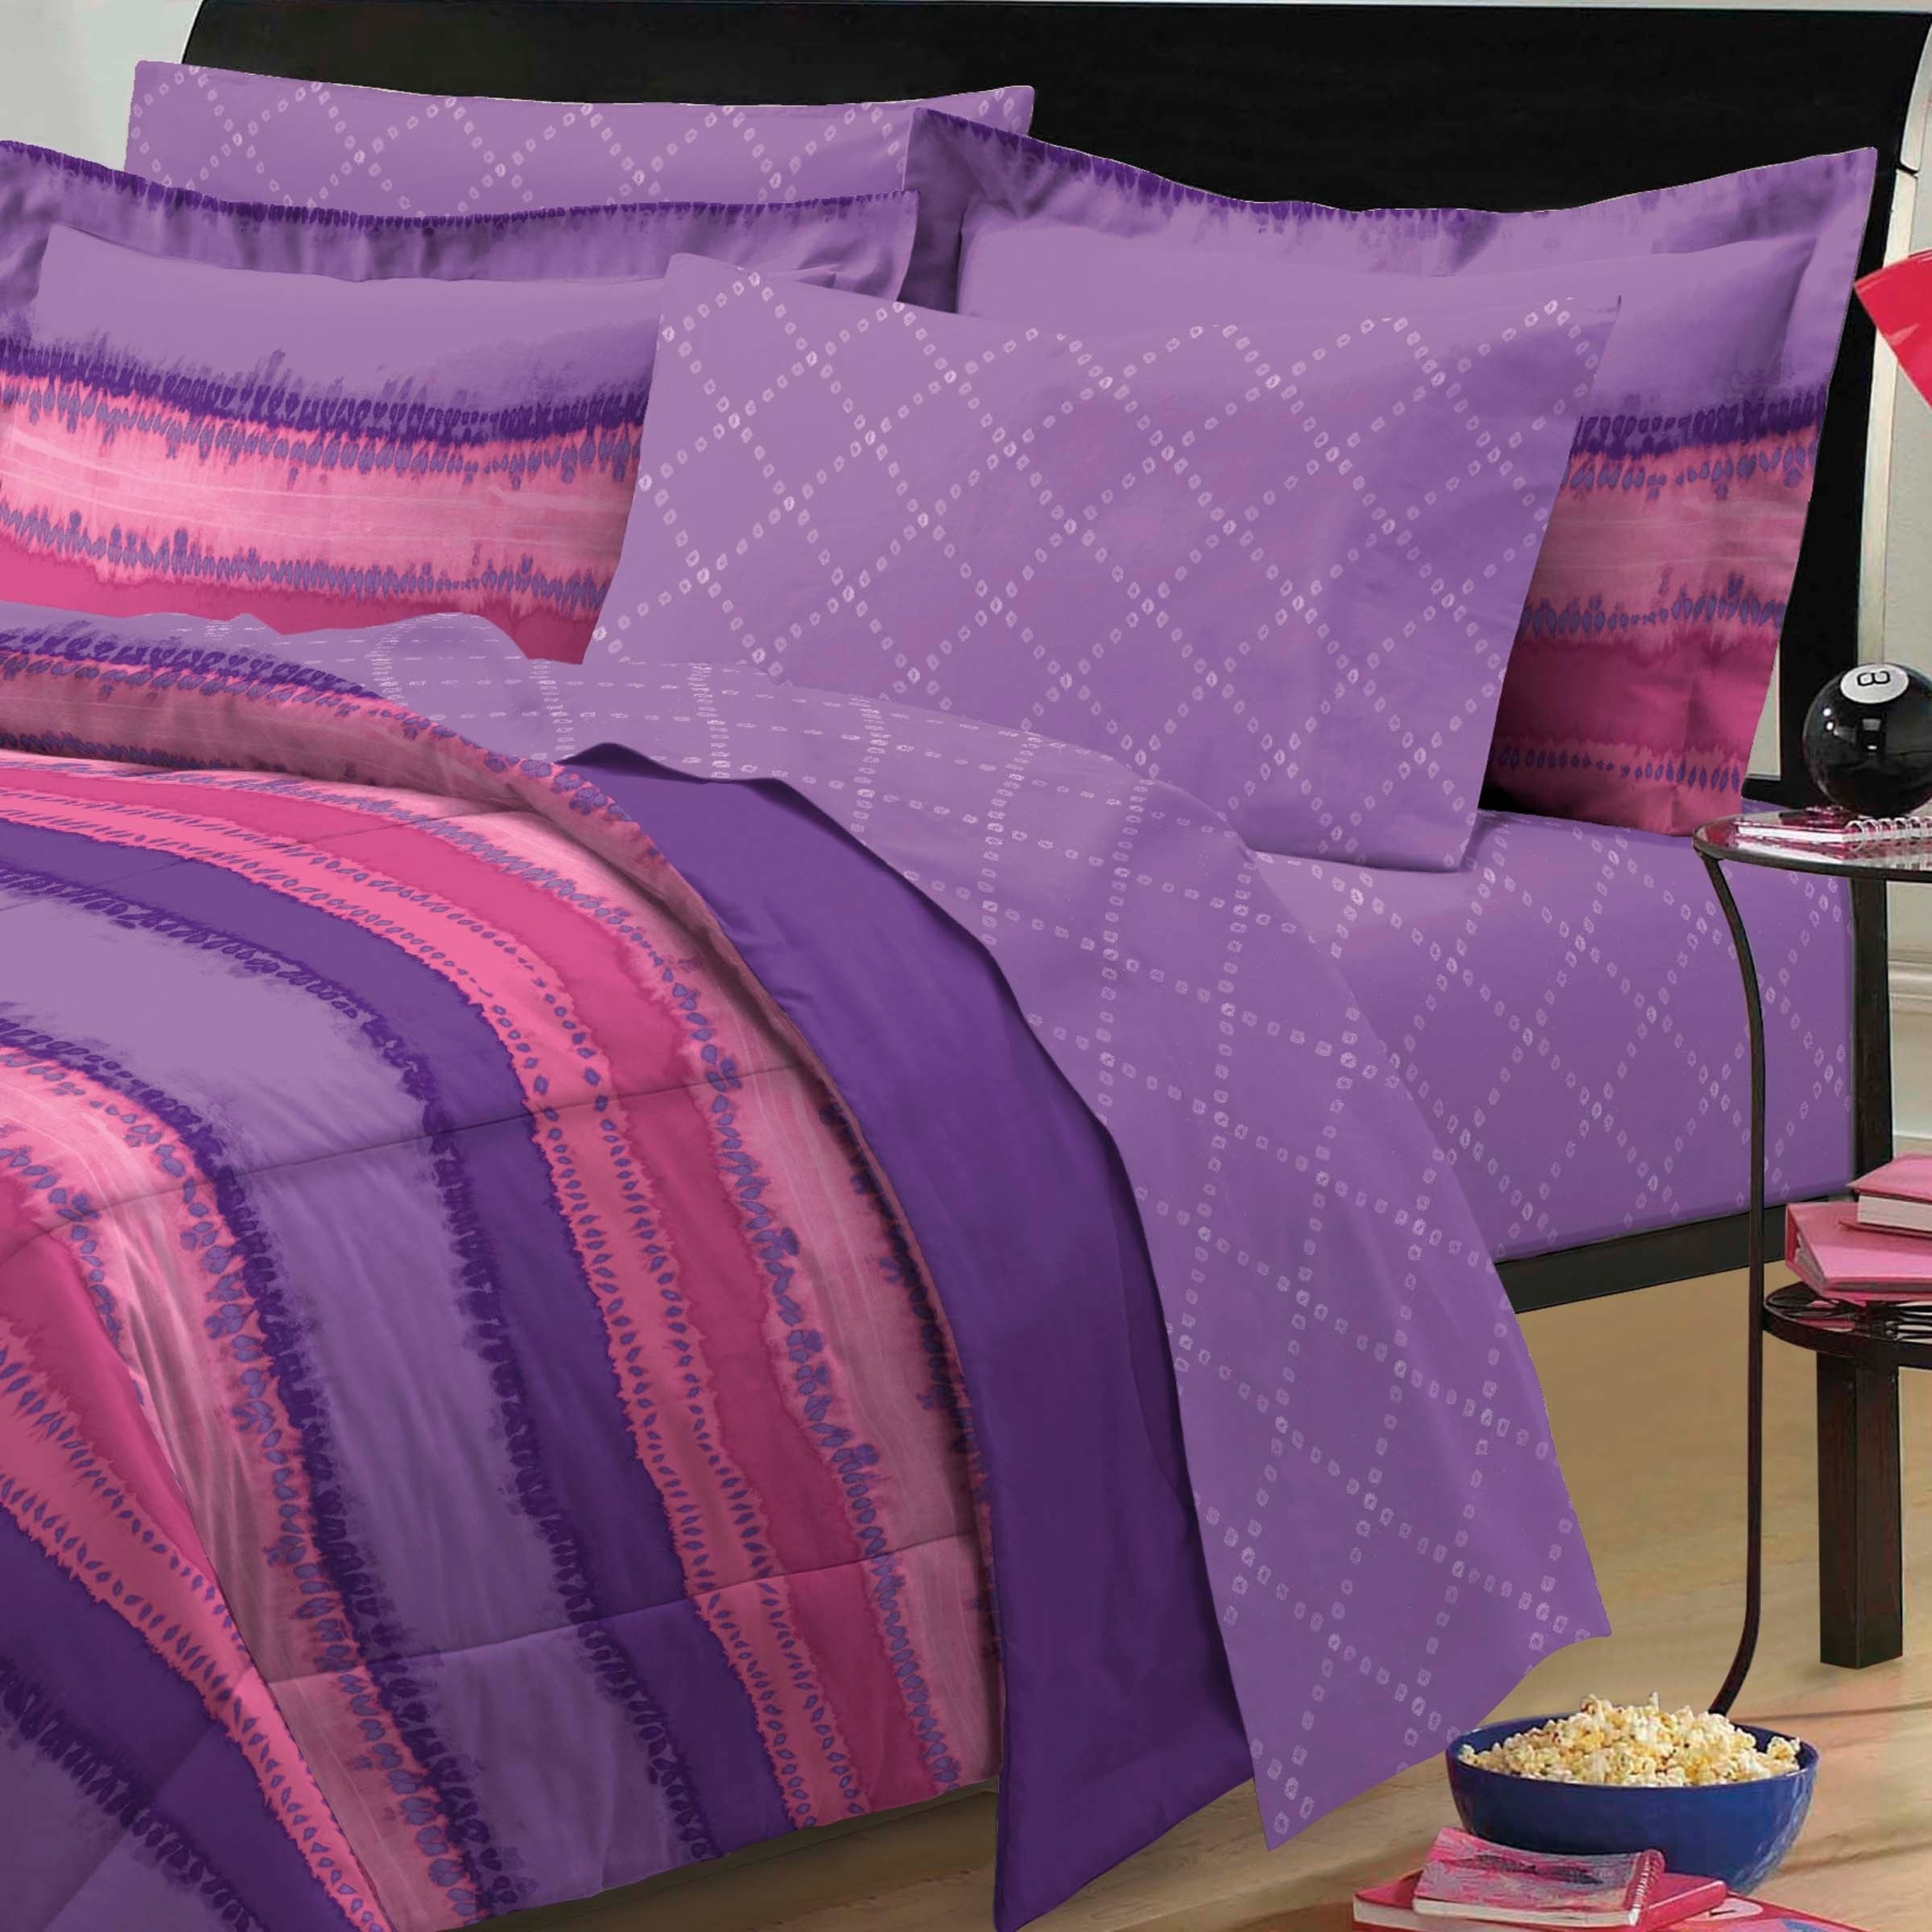 Tie Dye Purple Pink 7 Piece Bed In A Bag With Sheet Set Overstock 6814008